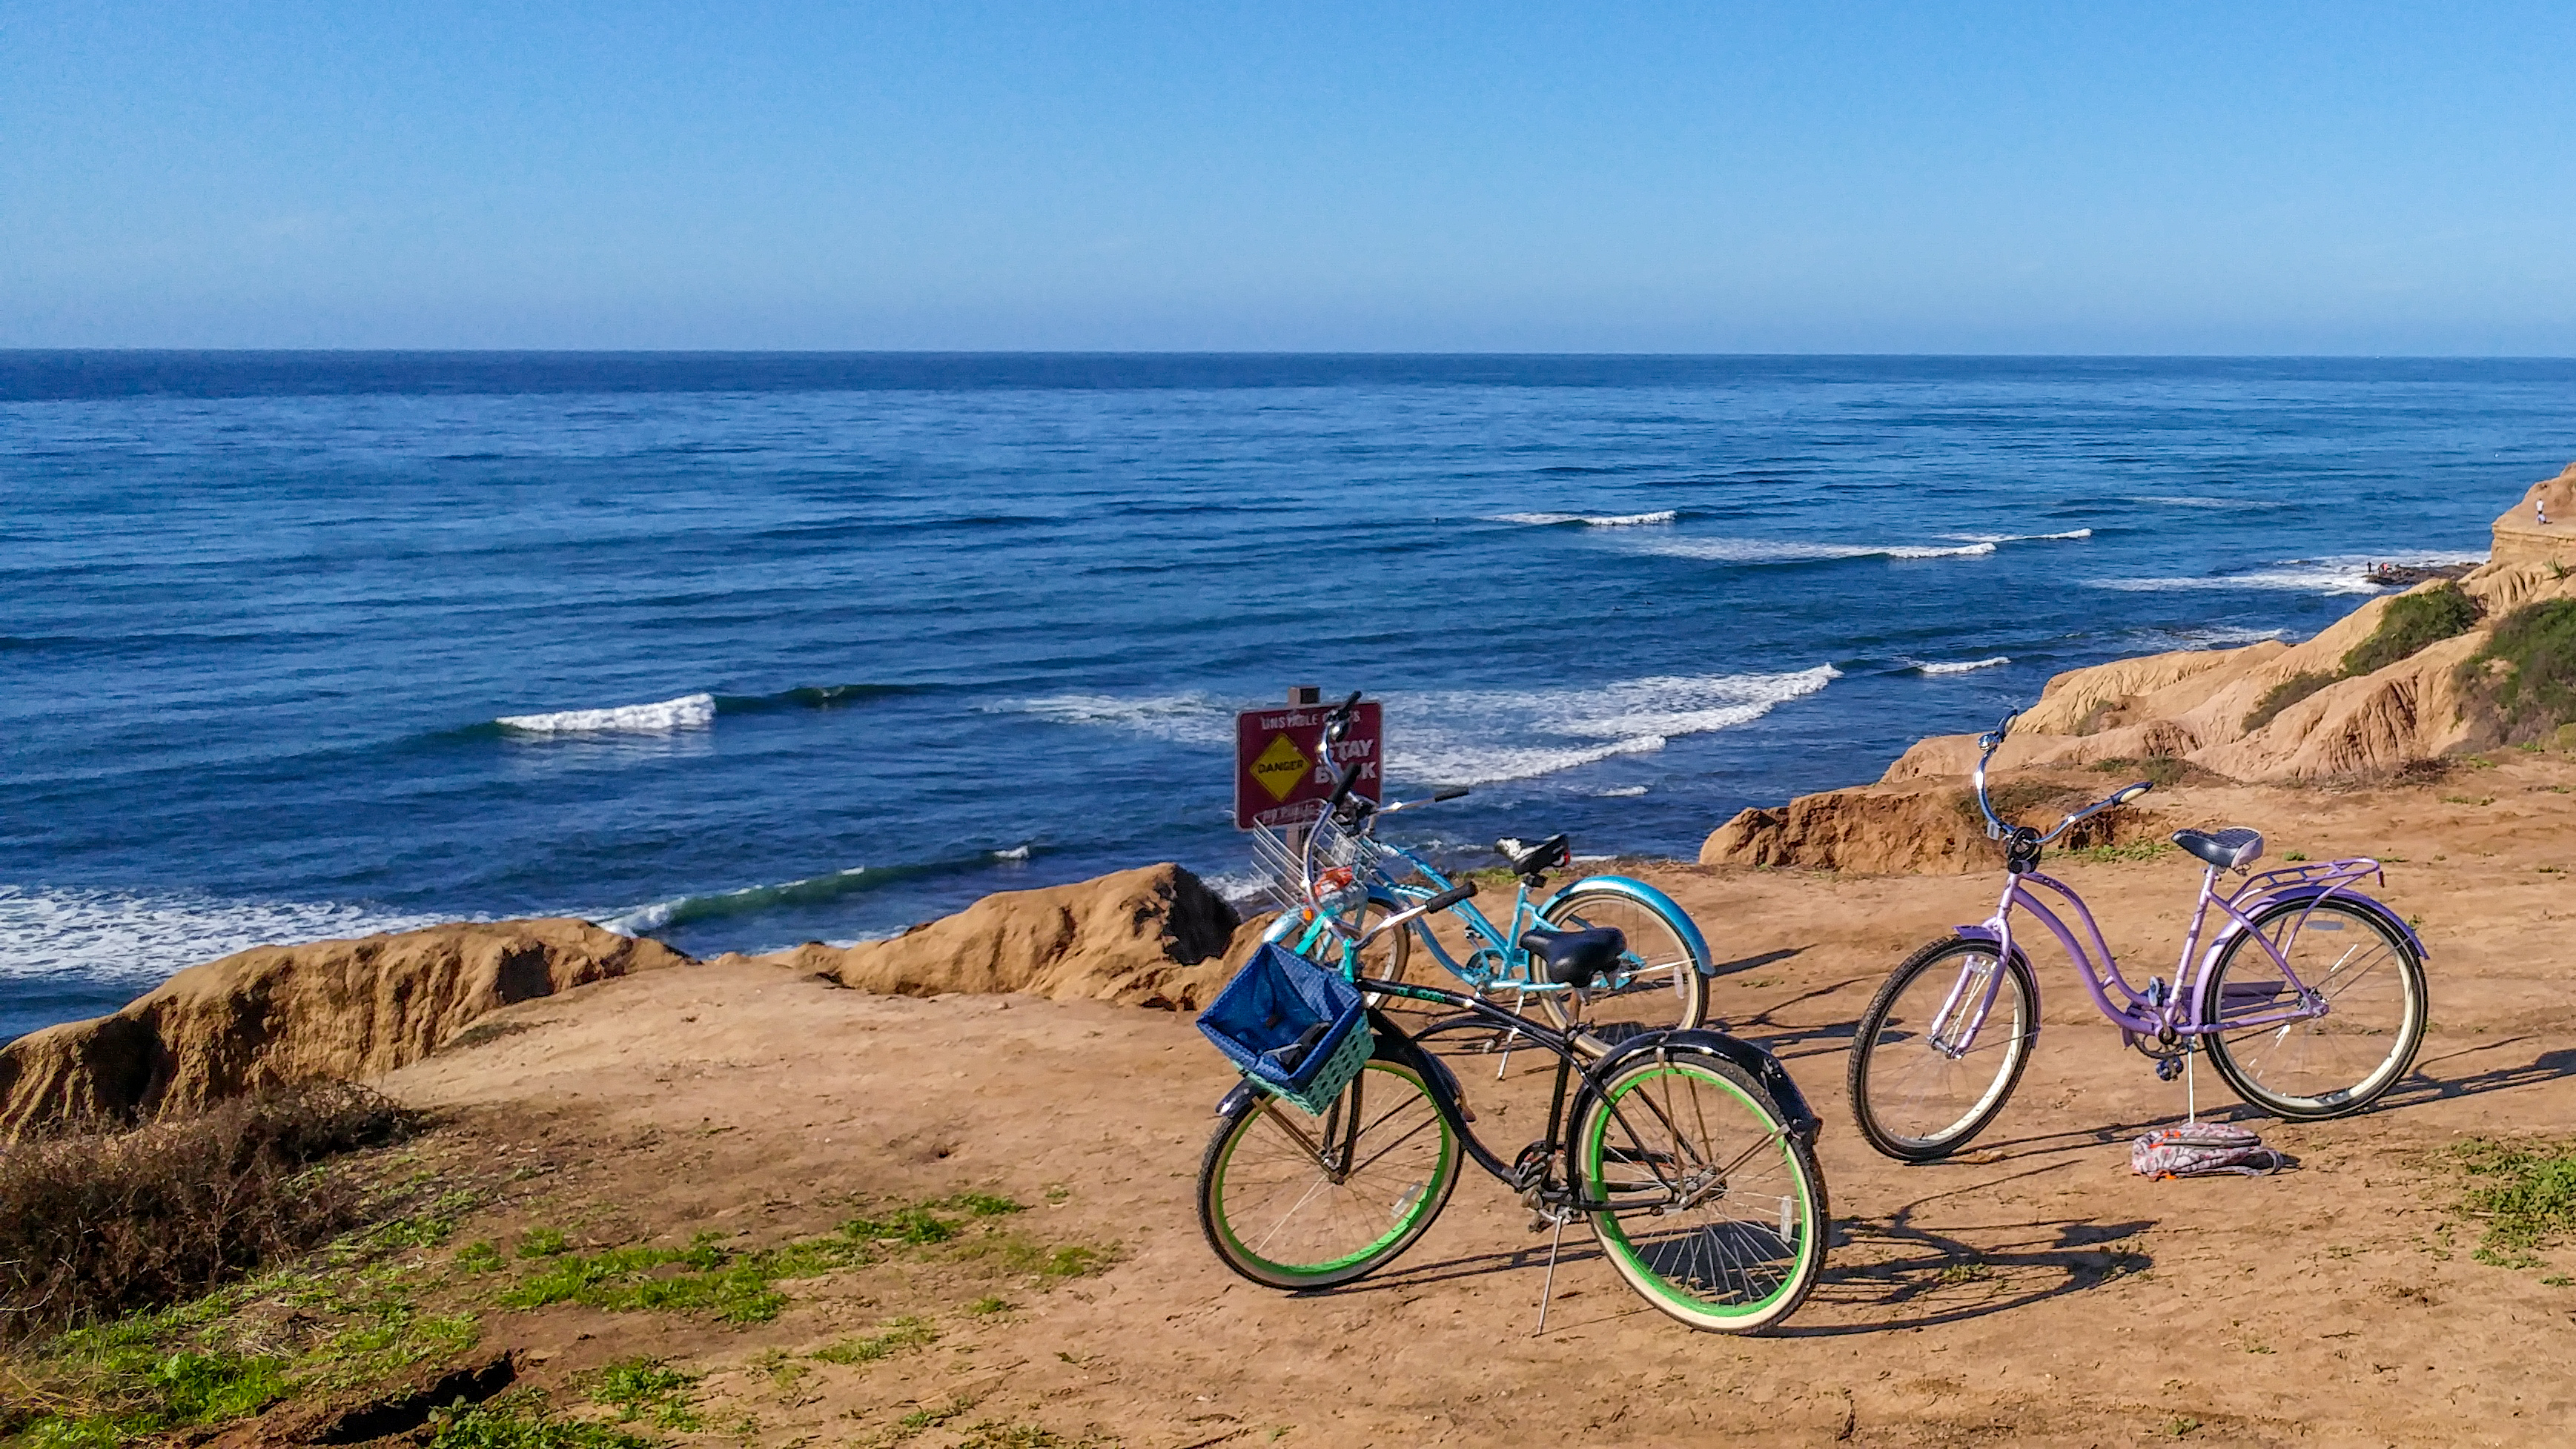 Two beach cruisers near sunset cliffs